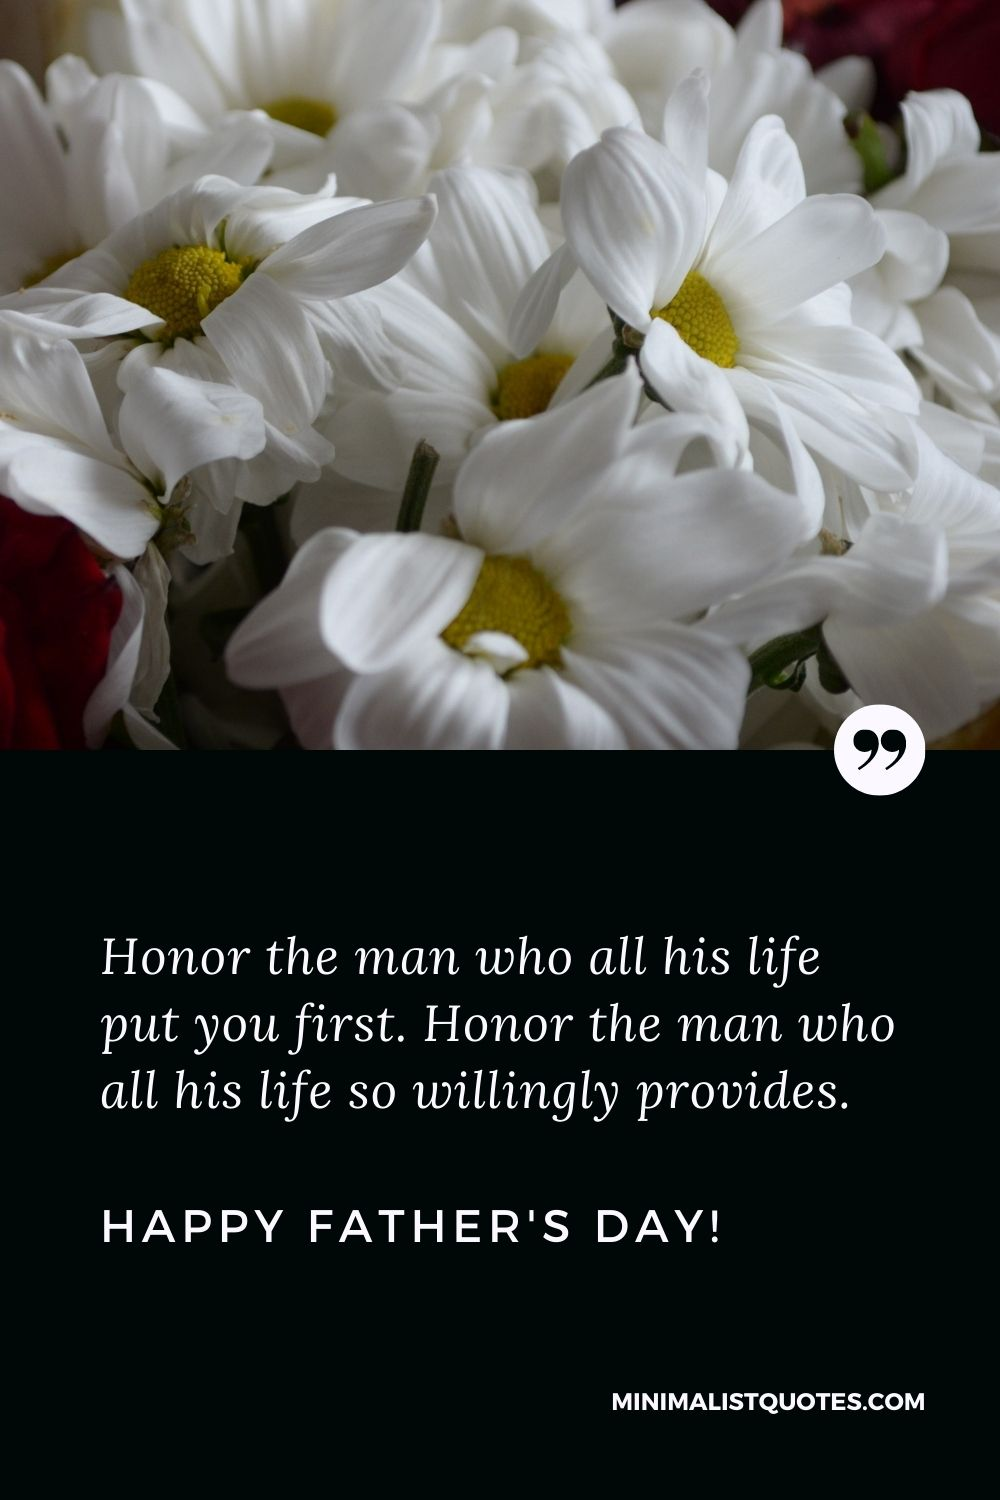 Fathers Day Quote, Wish & Message With Image: Honor the man who all his life put you first. Honor the man who all his life so willingly provides. Happy Fathers Day!